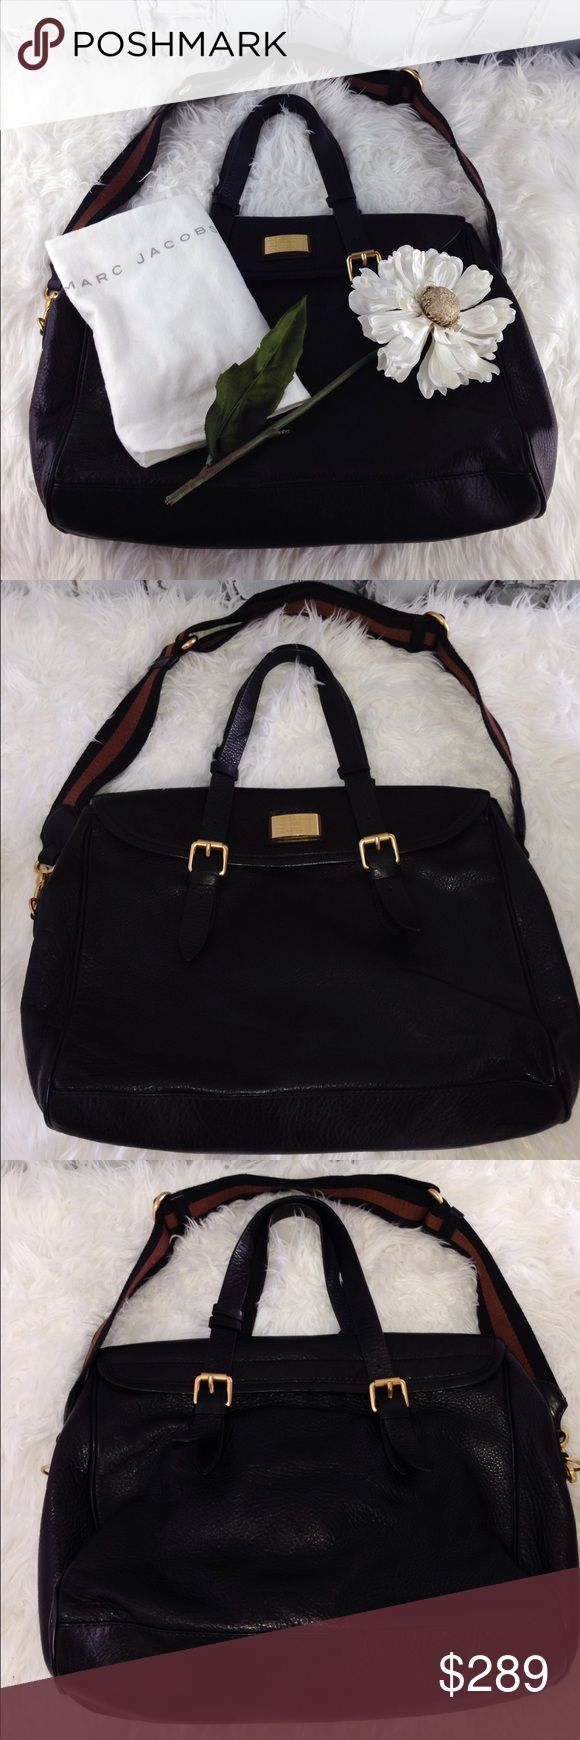 """SALE Marc Jacobs Weekender Black Bag Fabulous Marc Jacobs Messanger Black Bag 16"""" W x 13"""" H 3 separate compartments inside 2 multi purpose compartments! Inside zippered compartment magnetic closure removable Adjustable shoulder strap as well as adjustable handles Like New condition with dust bag Perfect Christmas Gift for that Loved One or Treat yourself to a Beautiful Quality Leather Bag ❤ Marc Jacobs Bags Satchels"""